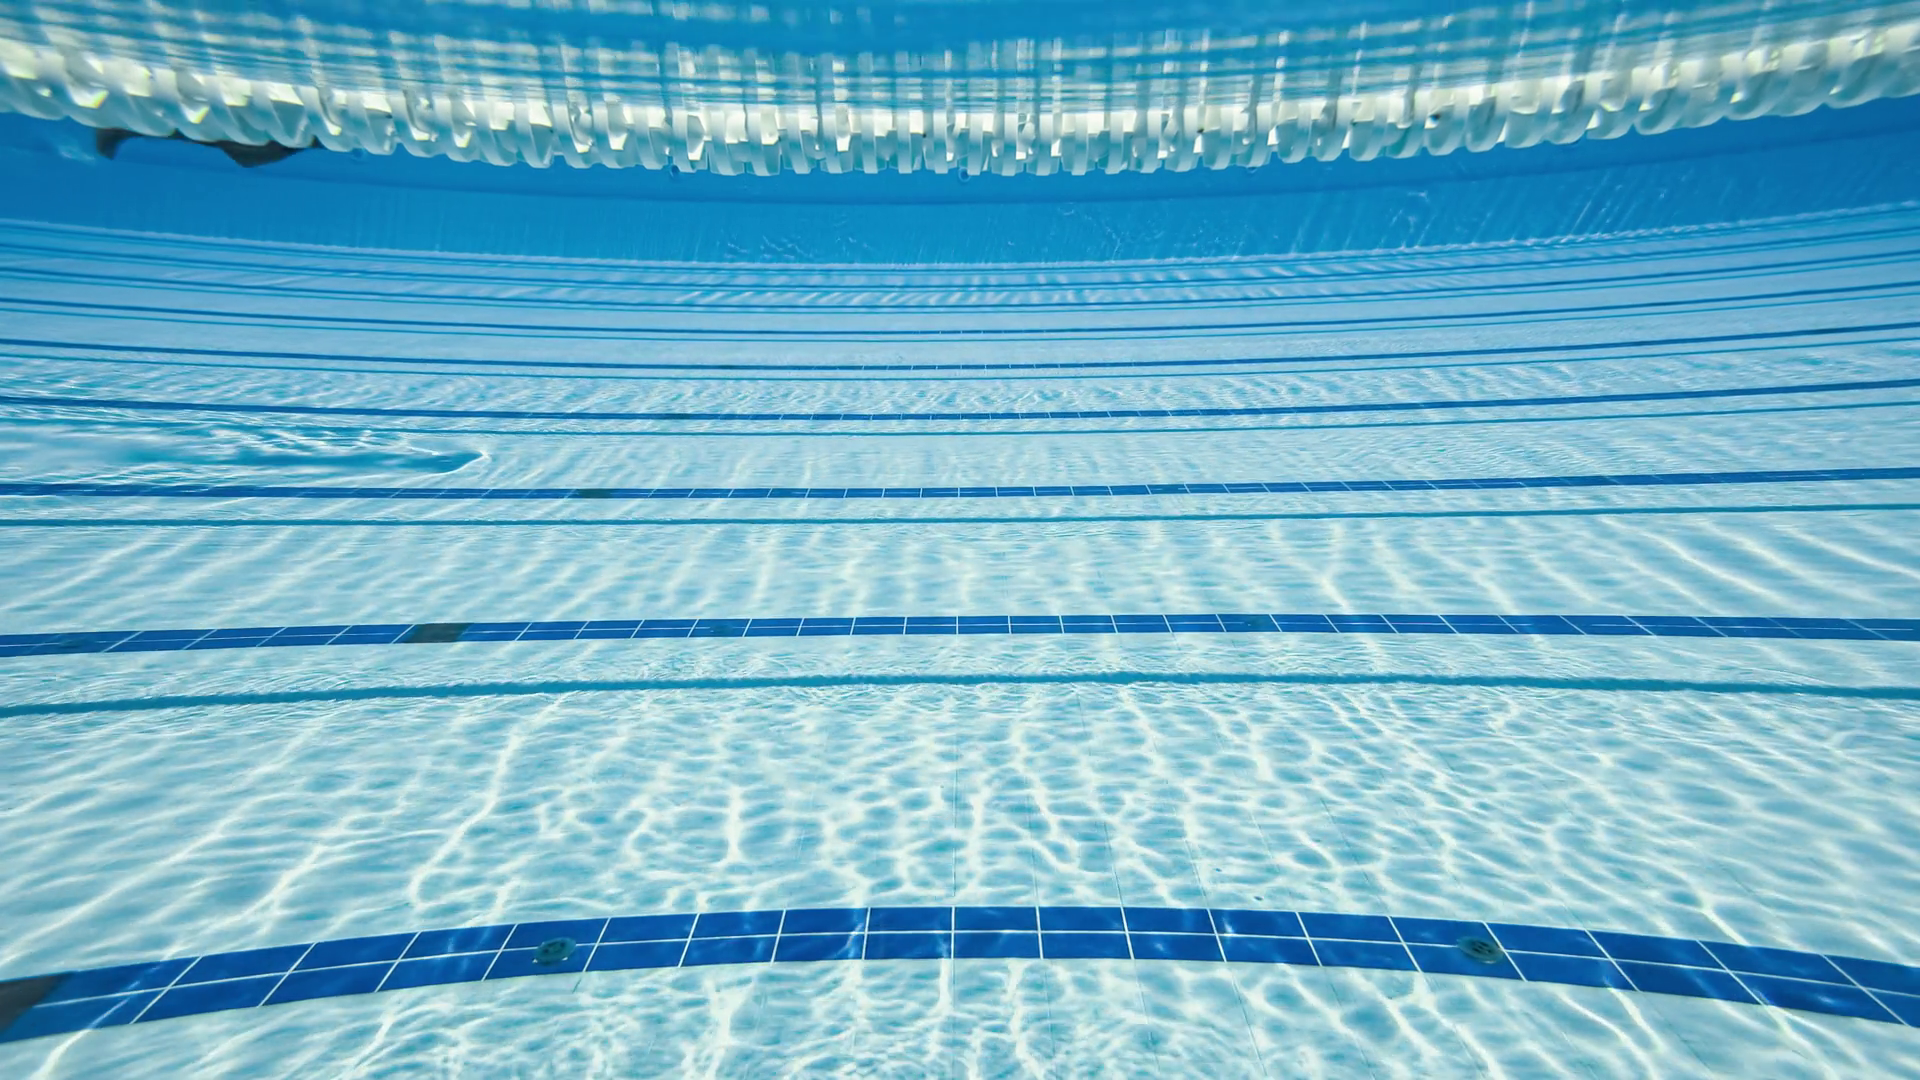 Olympic Swimming Pool Underwater Background Stock Video Footage Storyblocks